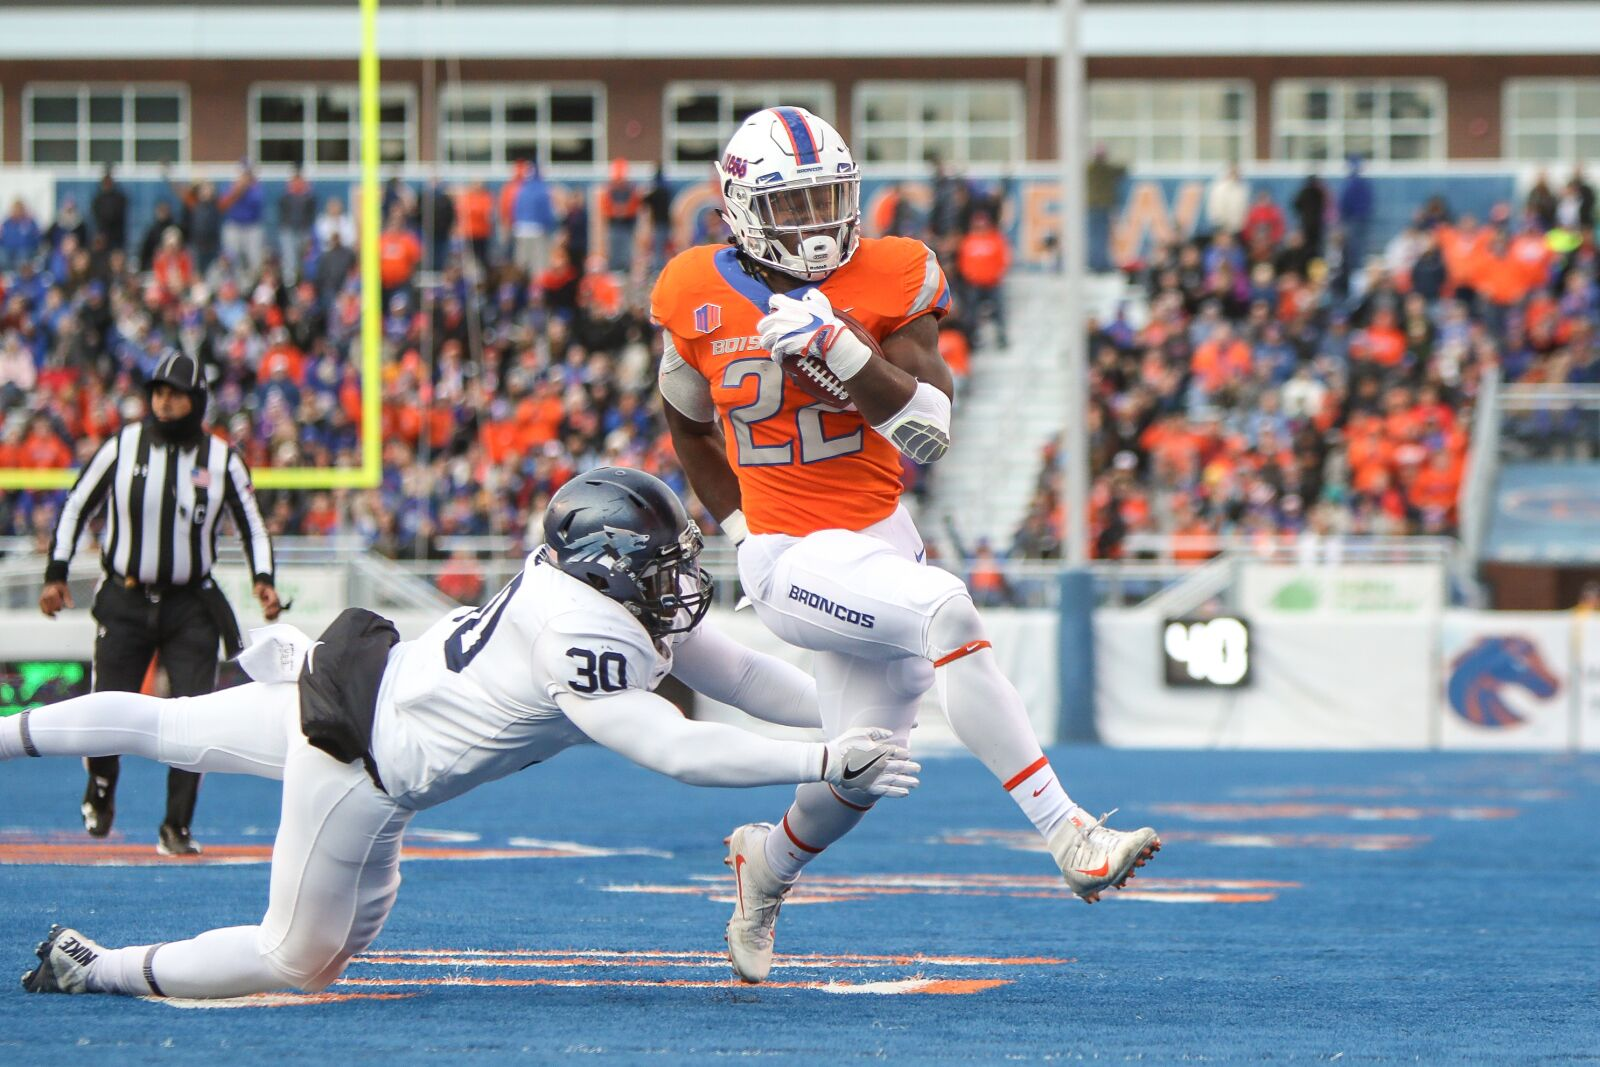 A huge selection of Boise State football tickets are available online at Official Ticket Reseller Vivid Seats! Get your Boise State Broncos football tickets today